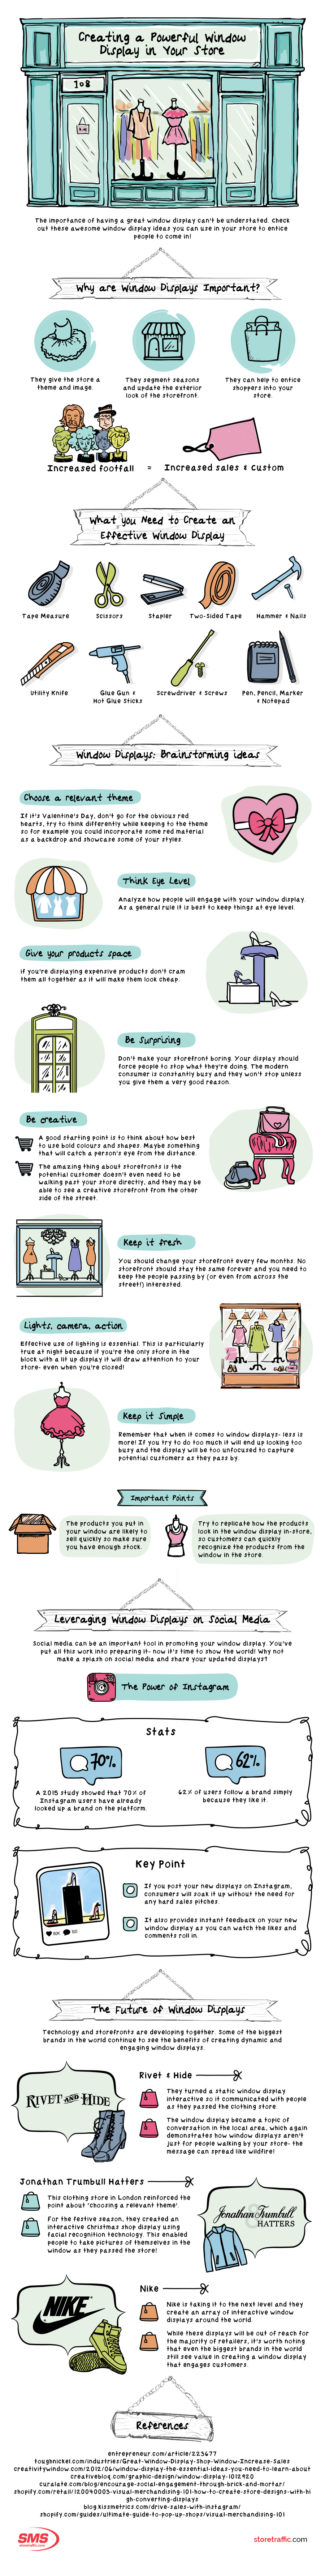 Creating a Powerful Window Displays In a Store- infographic